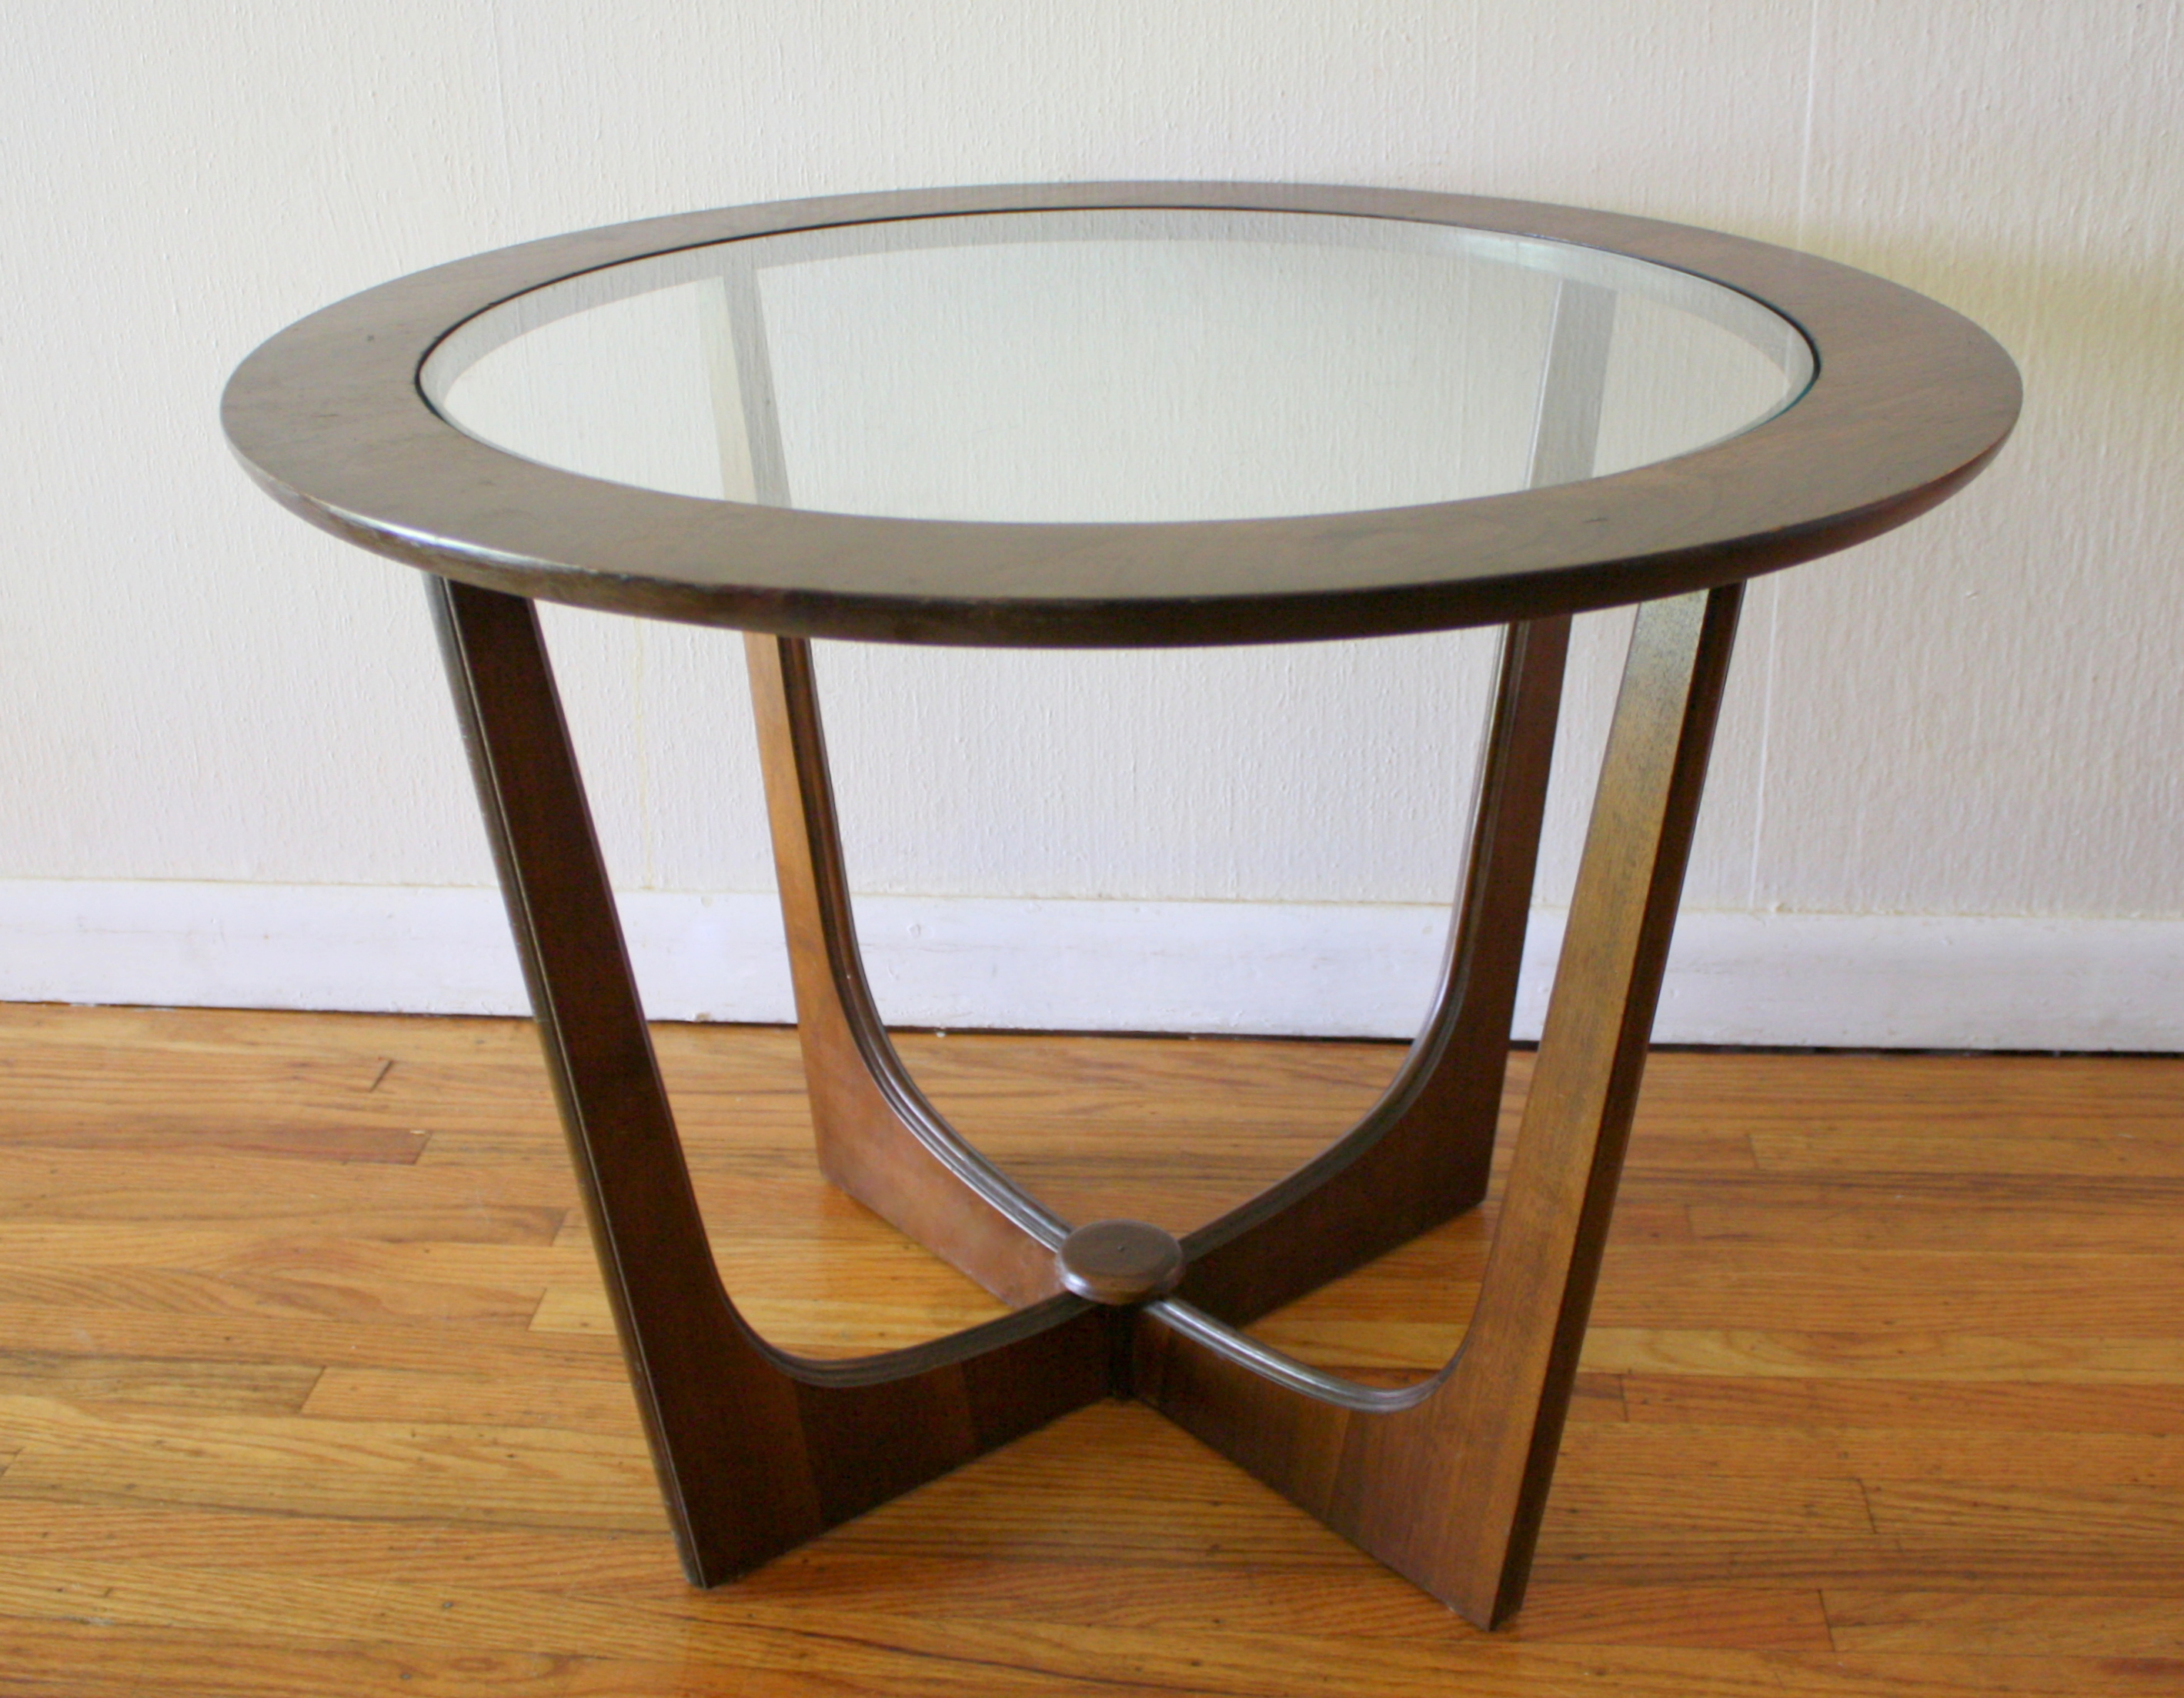 combo game table the super fun contemporary wood end tables lovely black and glass coffee rectangular edited good looking round ked vintage mcm insert side with top bronze pewter